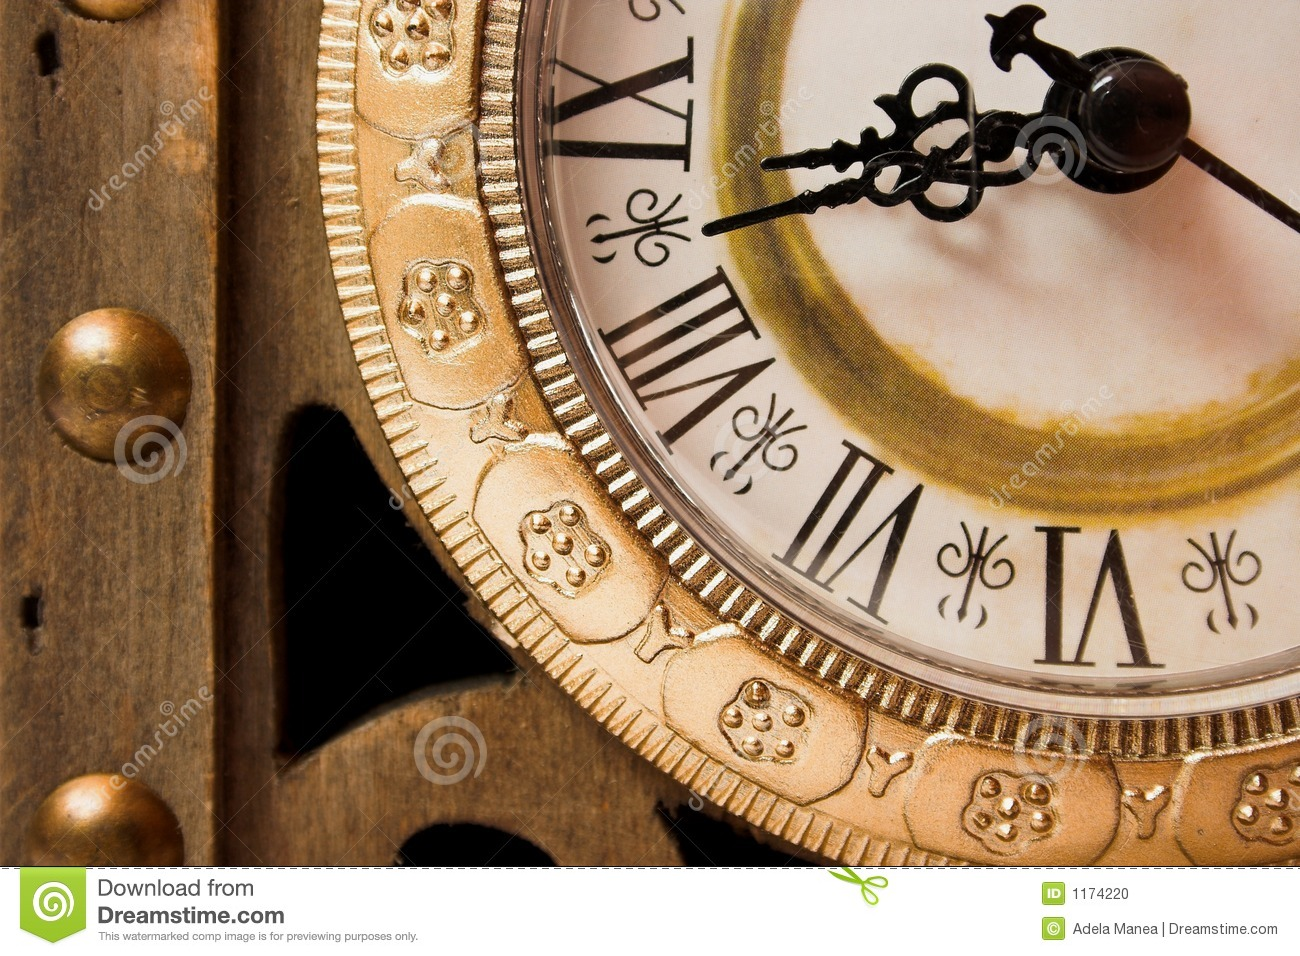 The time